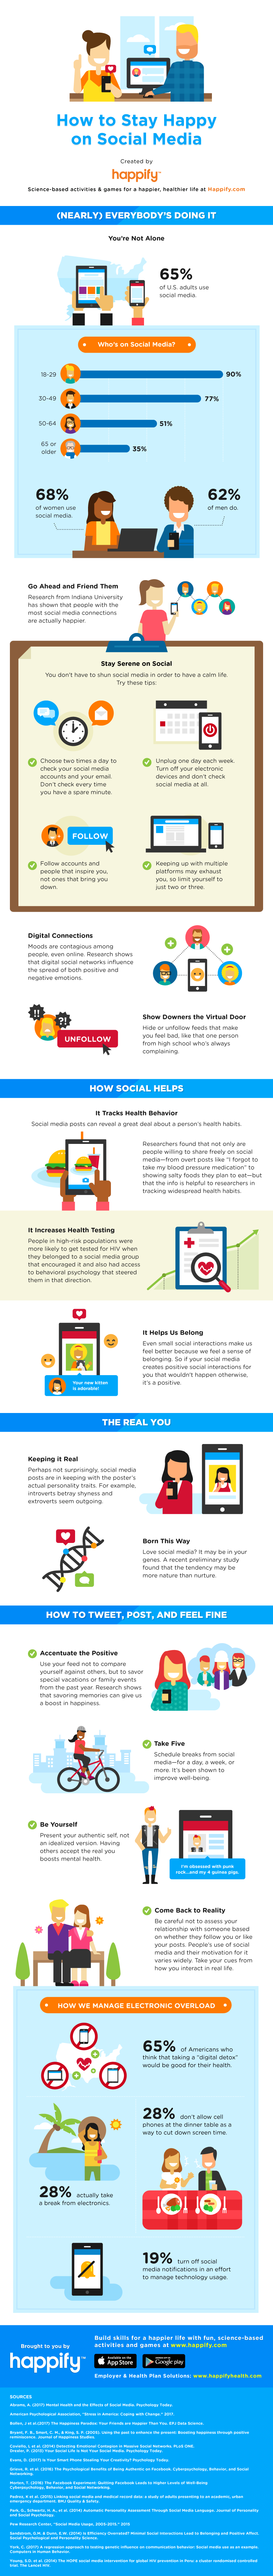 How to stay Happy on Social Media [Infographic] | ecogreenlove